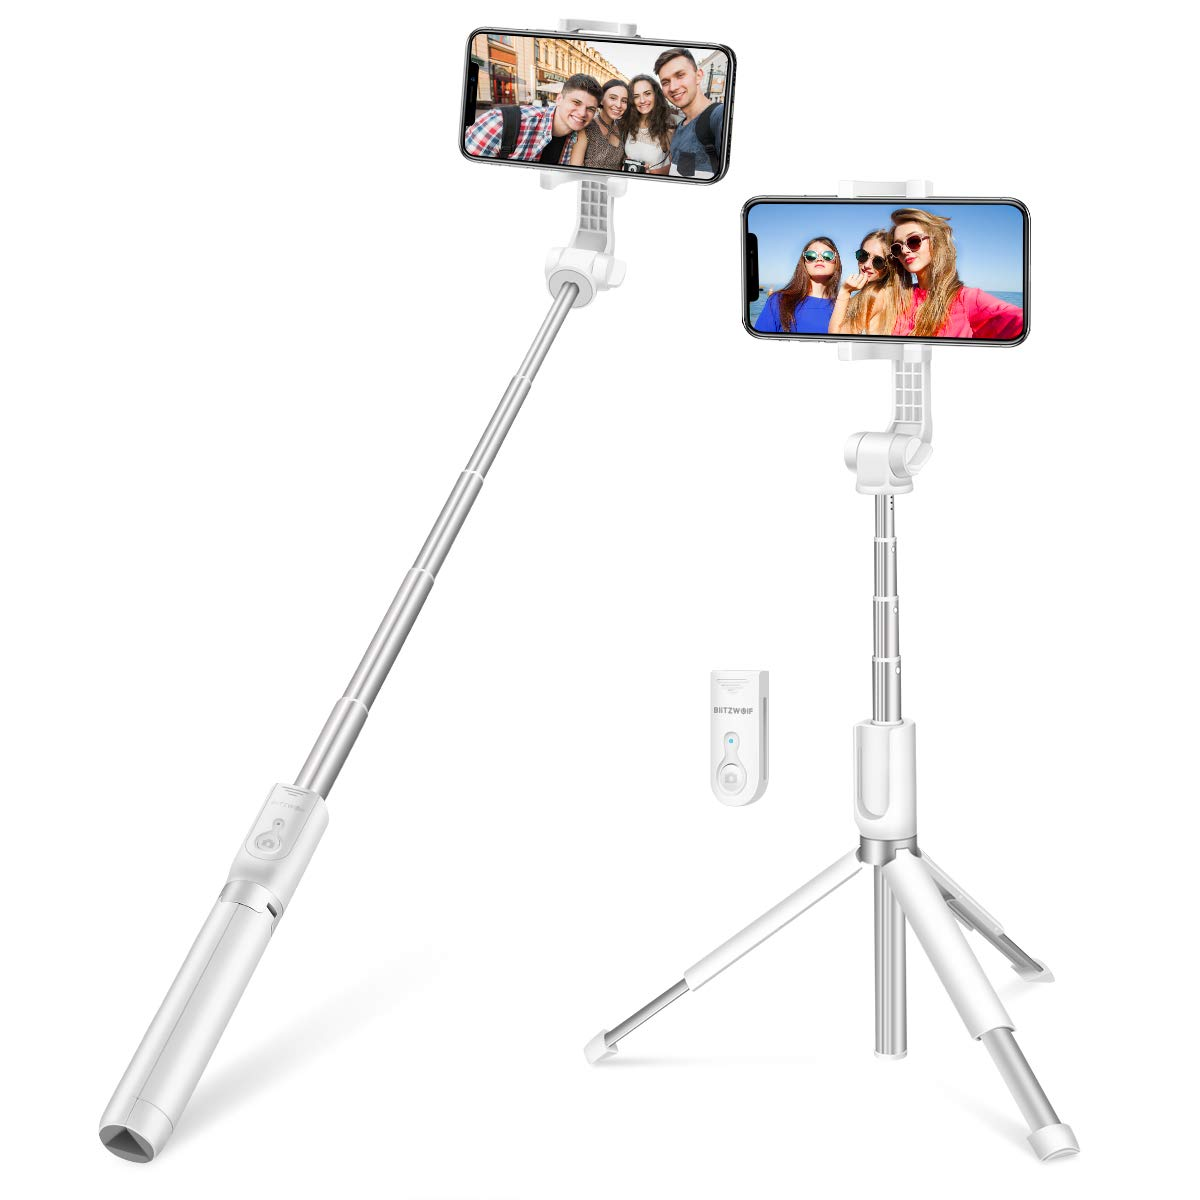 Android Phones BlitzWolf 3 in 1 Mini Extendable Aluminum bluetooth Selfie Stick Tripod with Wireless Remote and 3 Level Fill Light for iPhone XS MAX XR X 8 8 Plus 7 7 Plus 6 6S Cameras Selfie Stick